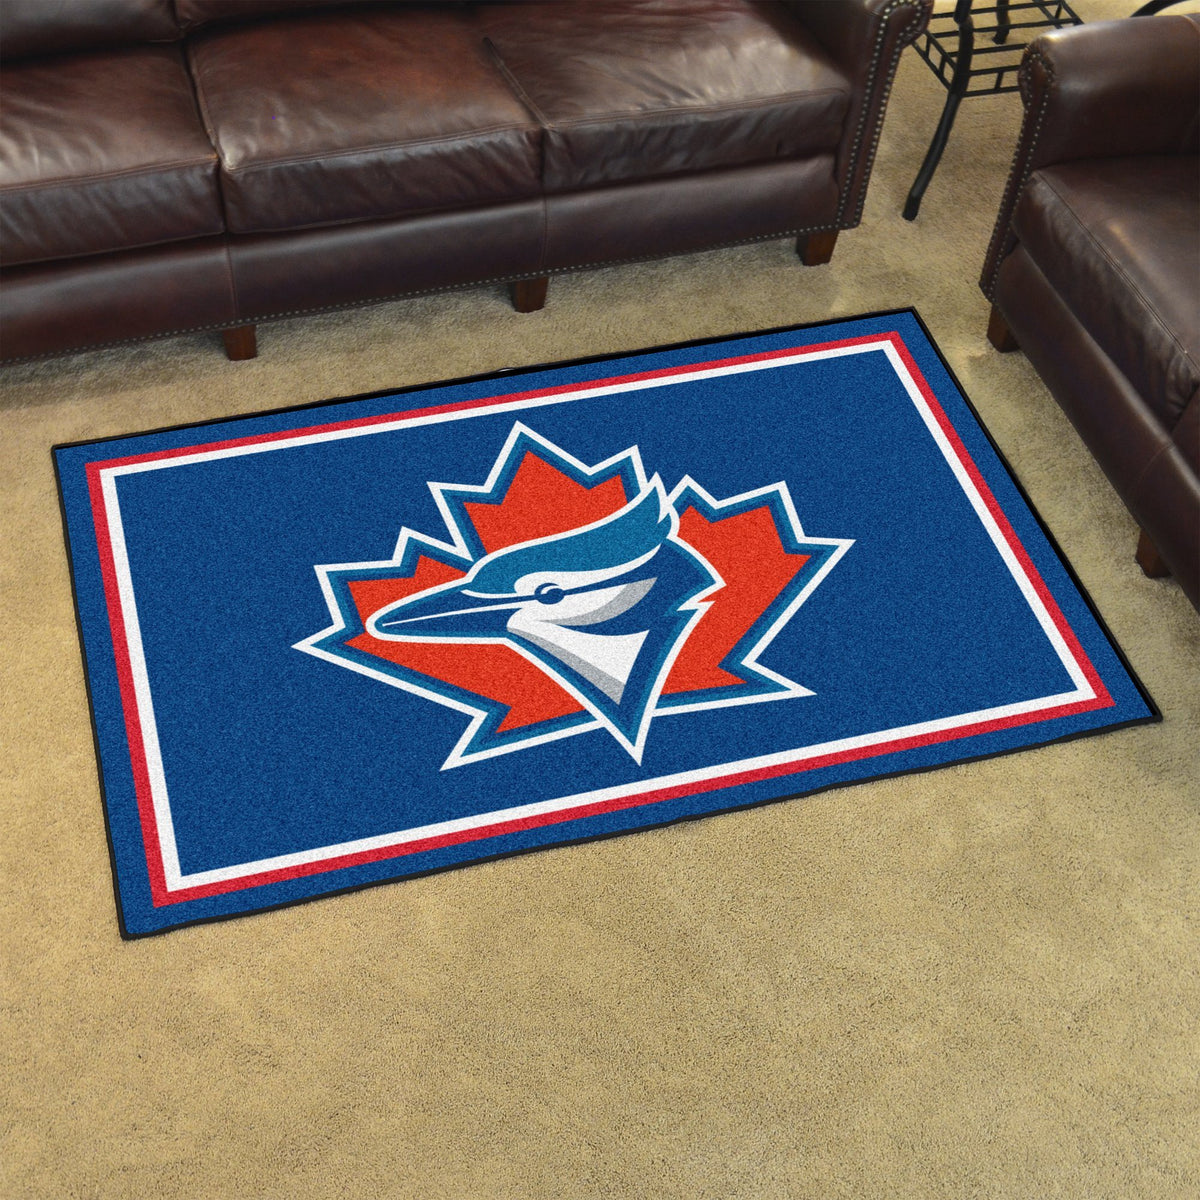 MLB Retro - 4' x 6' Rug MLB Retro Mats, Plush Rugs, 4x6 Rug, MLB, Home Fan Mats Toronto Blue Jays 2